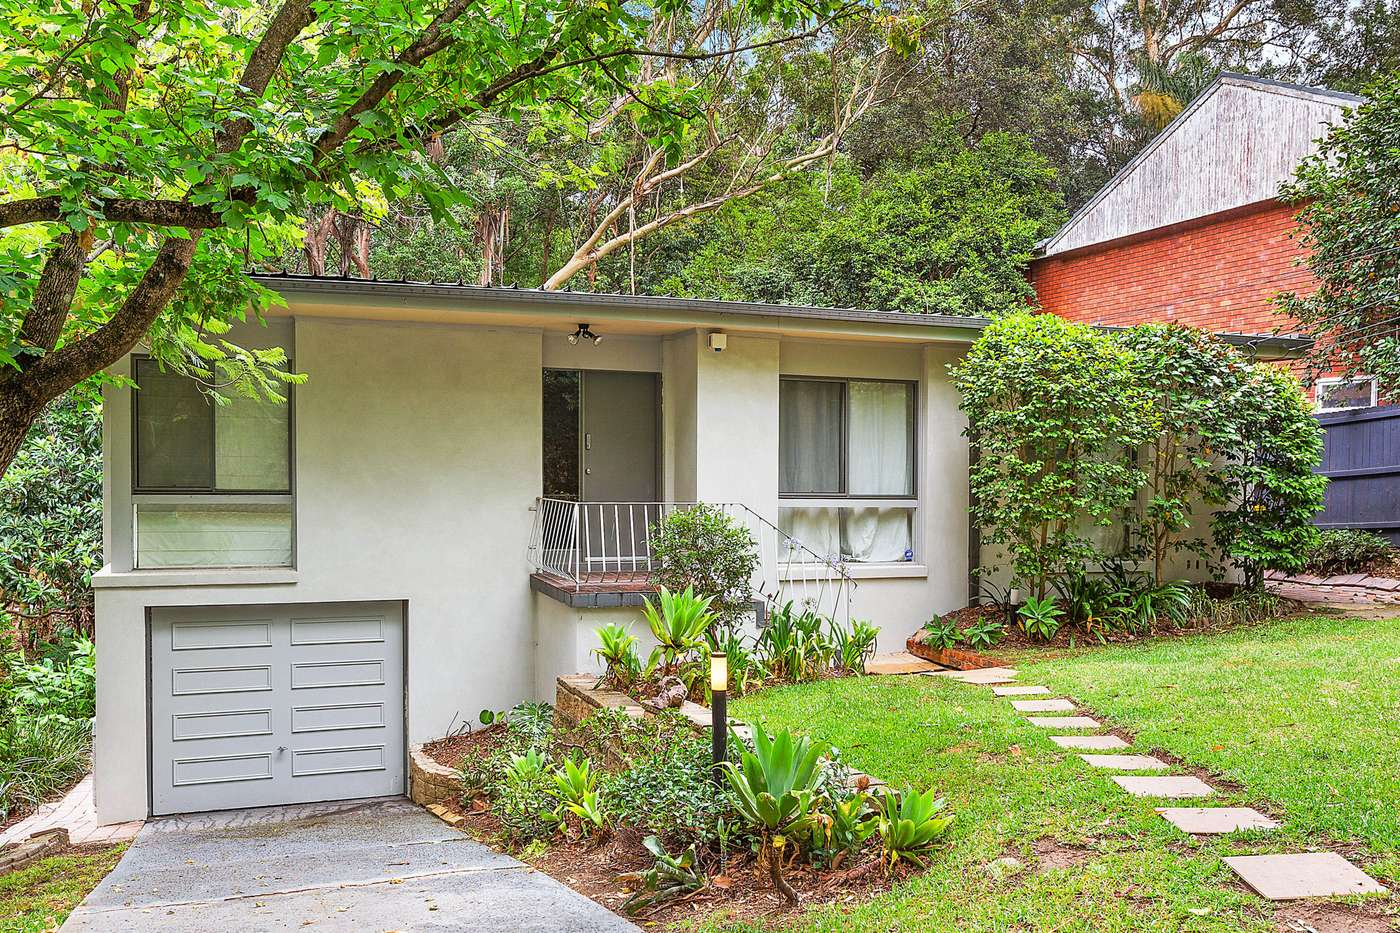 Main view of Homely house listing, 57 Duff Street, Turramurra, NSW 2074